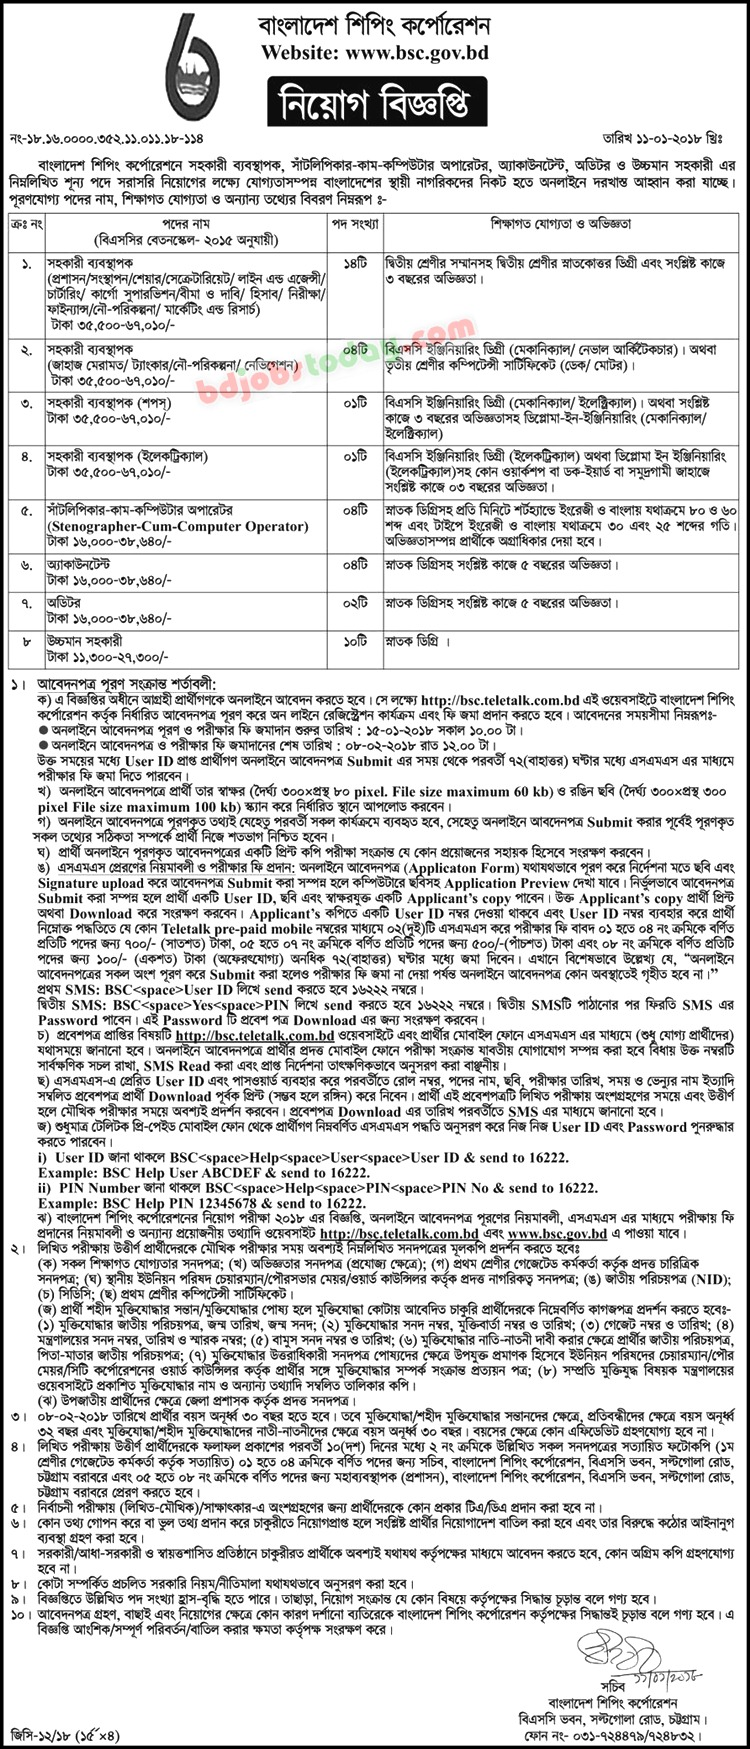 Bangladesh Shipping Corporation jobs